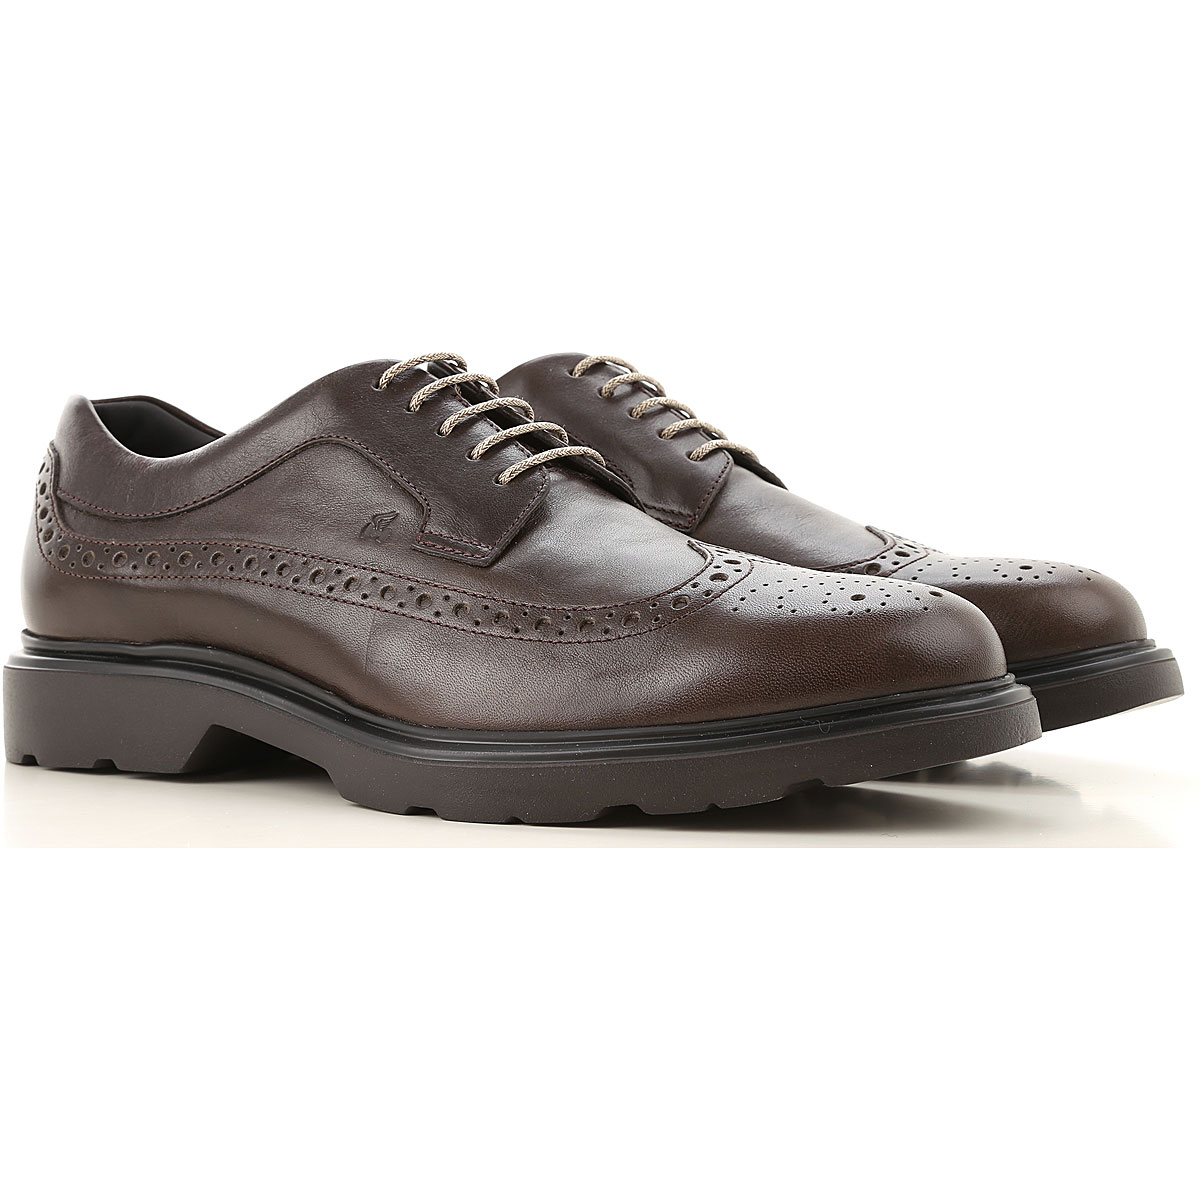 Hogan Brogue Shoes On Sale, Ebony, Leather, 2019, 10 9